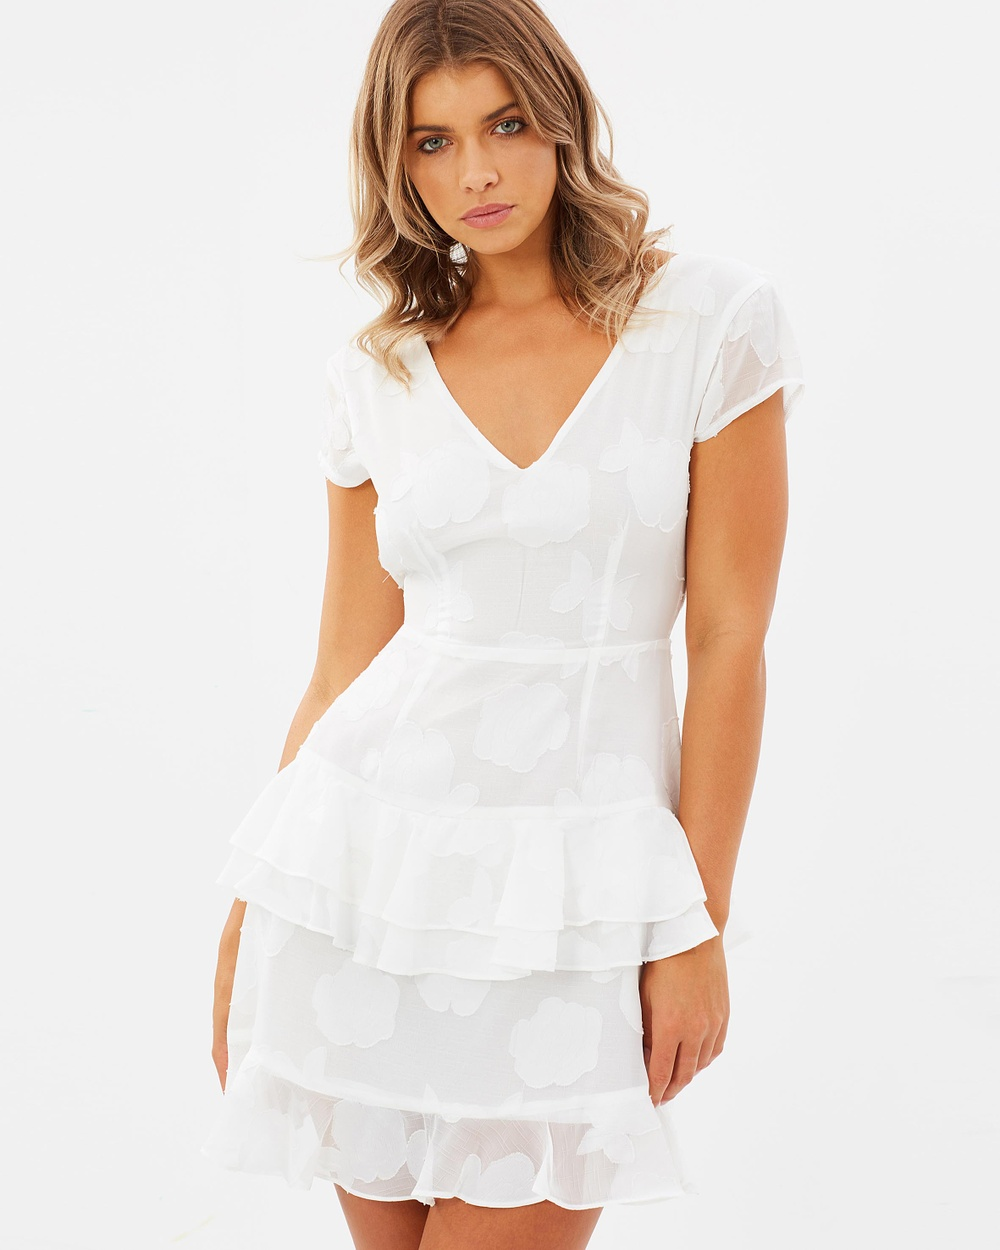 Atmos & Here ICONIC EXCLUSIVE Brea Frill Mini Dress Dresses White ICONIC EXCLUSIVE Brea Frill Mini Dress